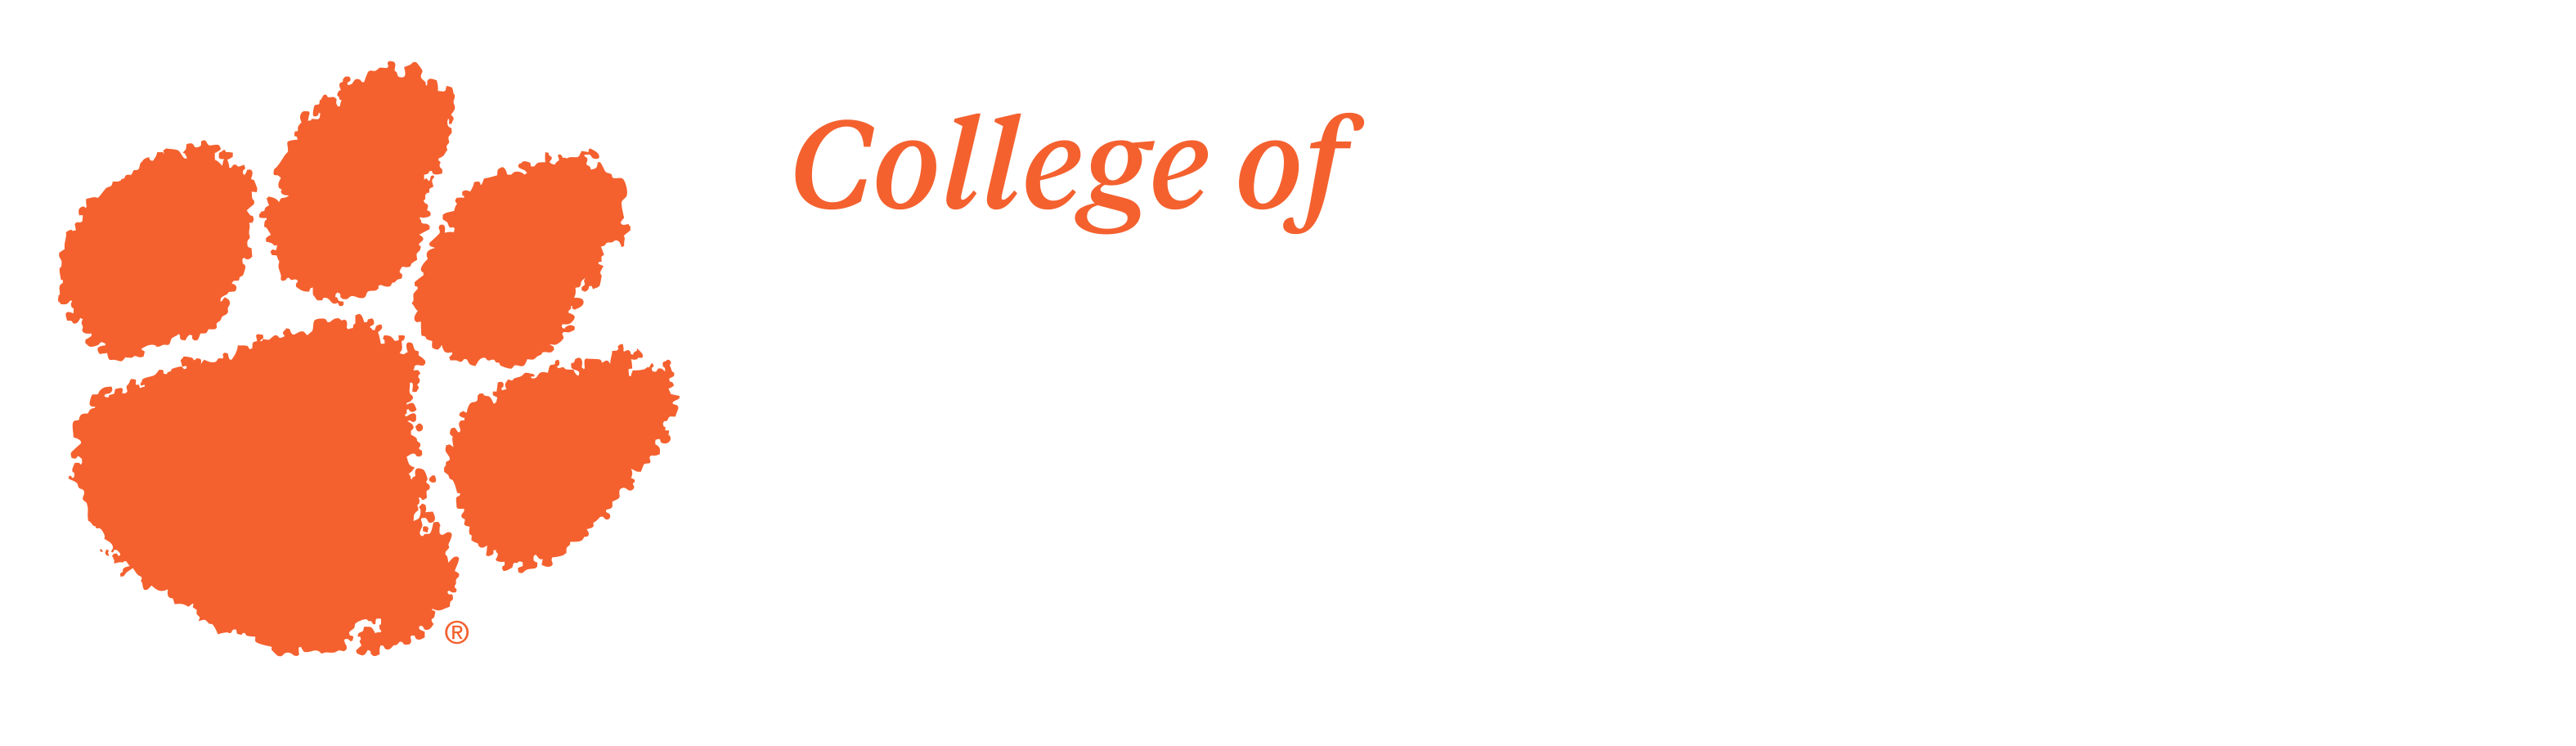 Clemson University College of Engineering, Computing and Applied Sciences, South Carolina